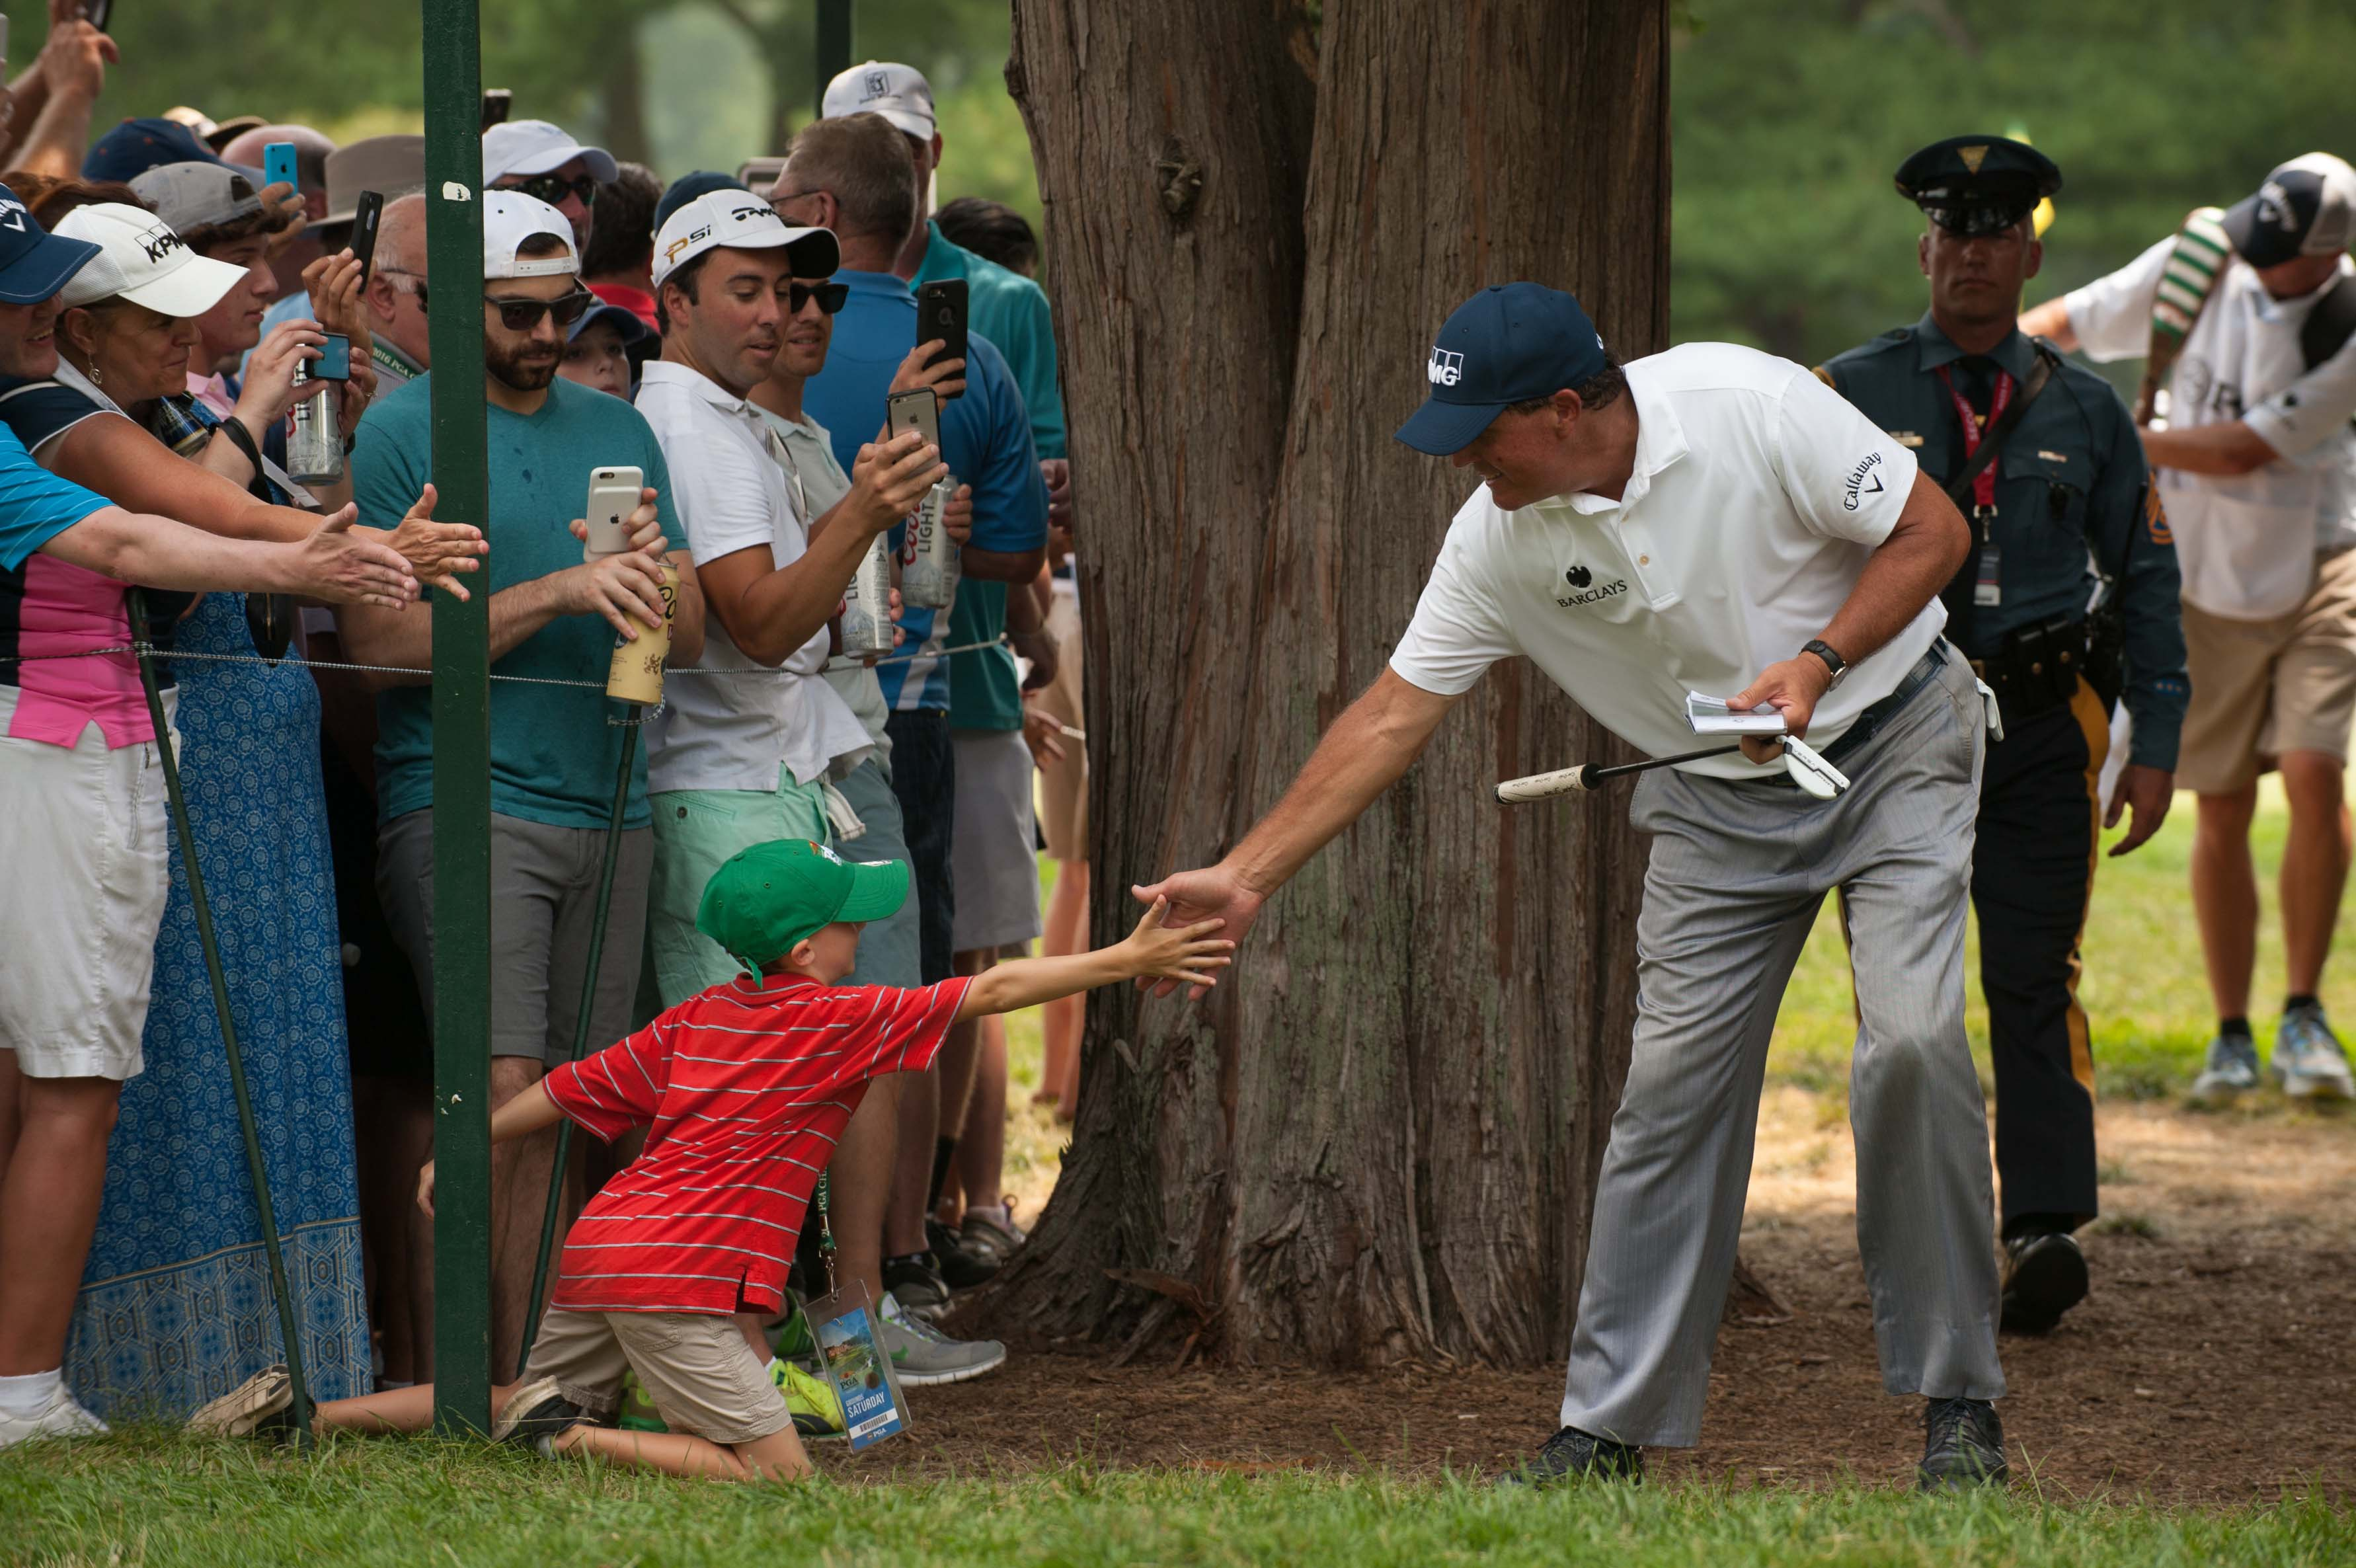 Phil shows Jason Day he has young fans, too